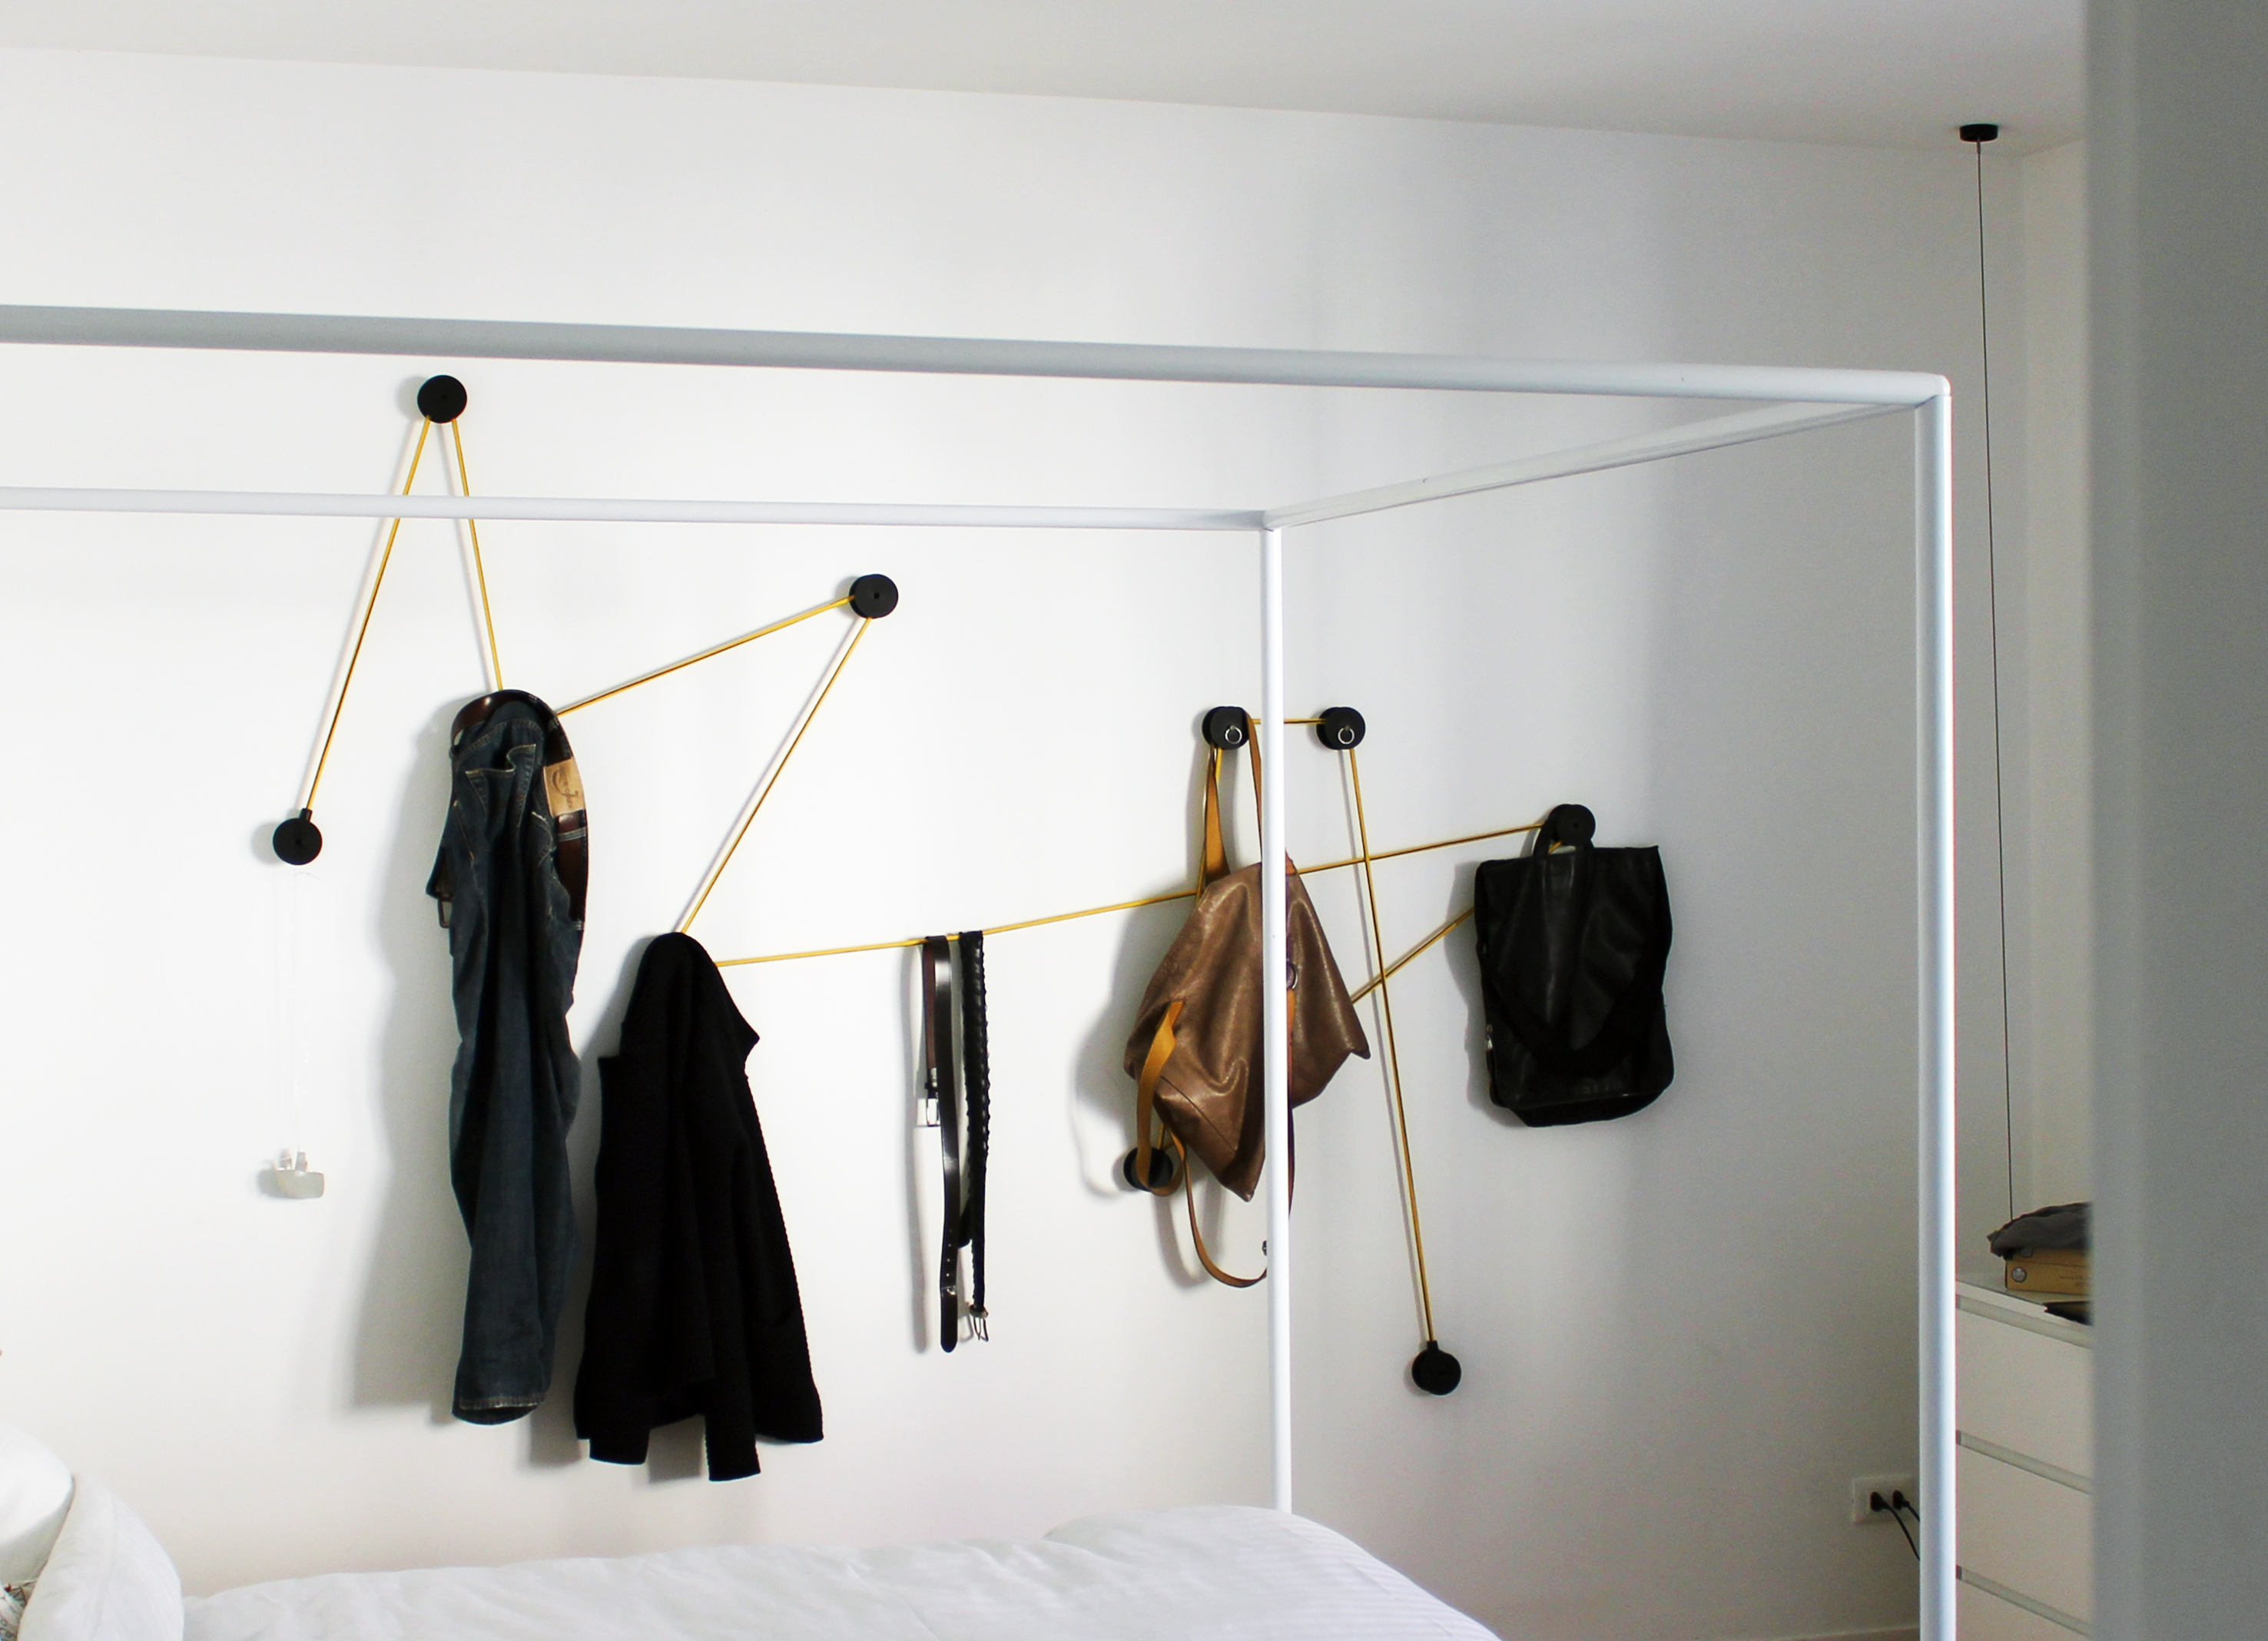 tit coat hook in pvc with elastic wire and clothes on the hangers